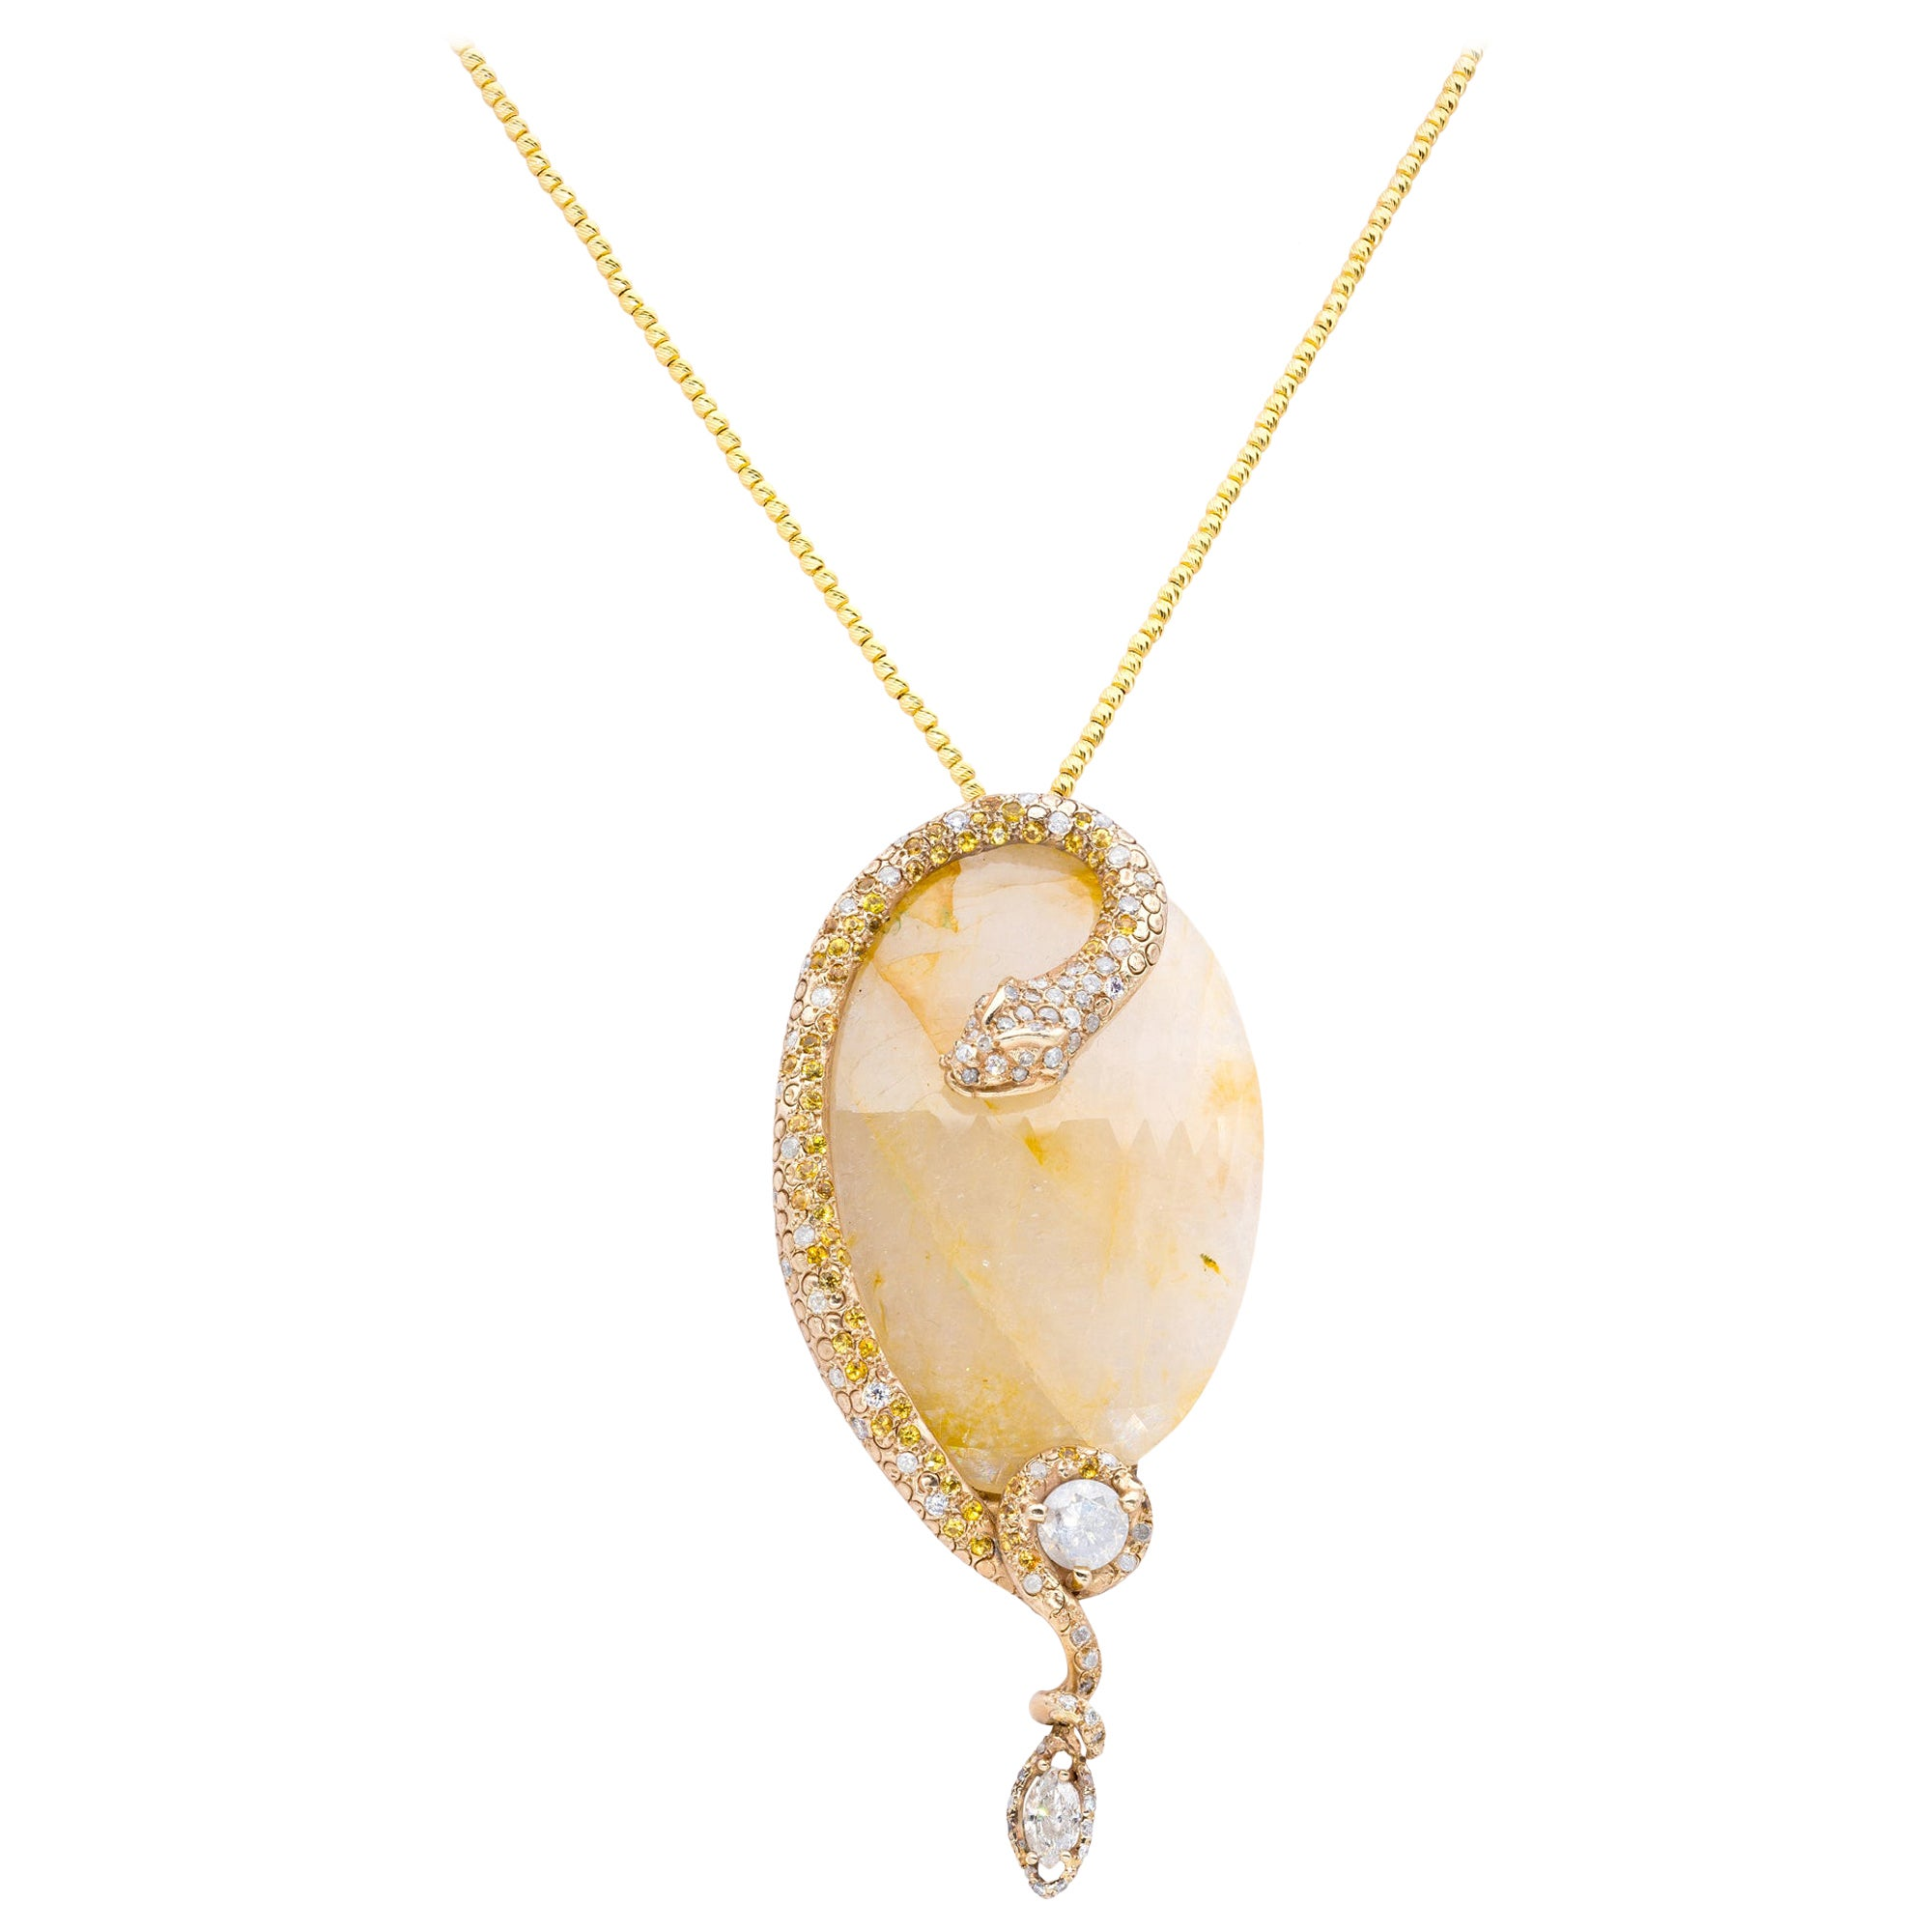 d'Avossa Yellow Sapphire Pendant Embraced by a Snake in Yellow Diamonds